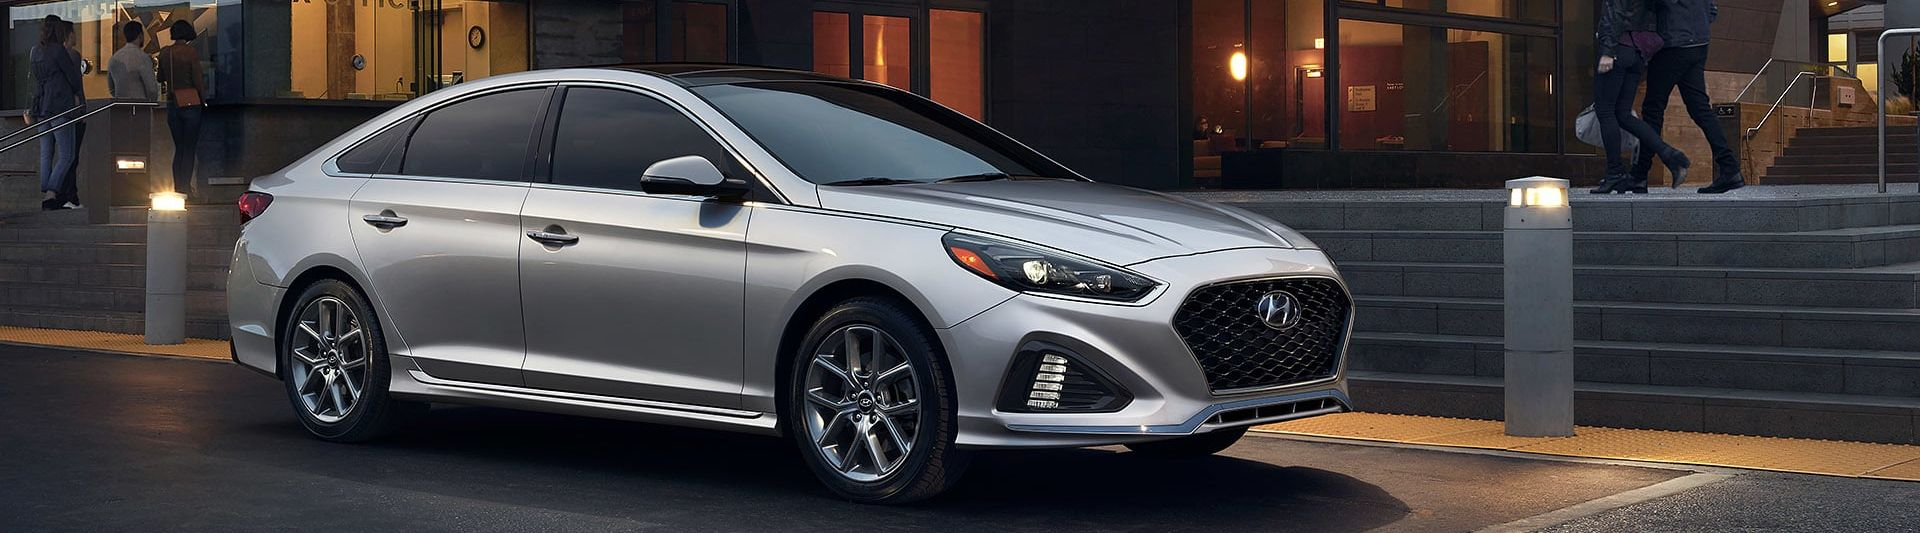 2019 Hyundai Sonata for Lease near Rockville, MD